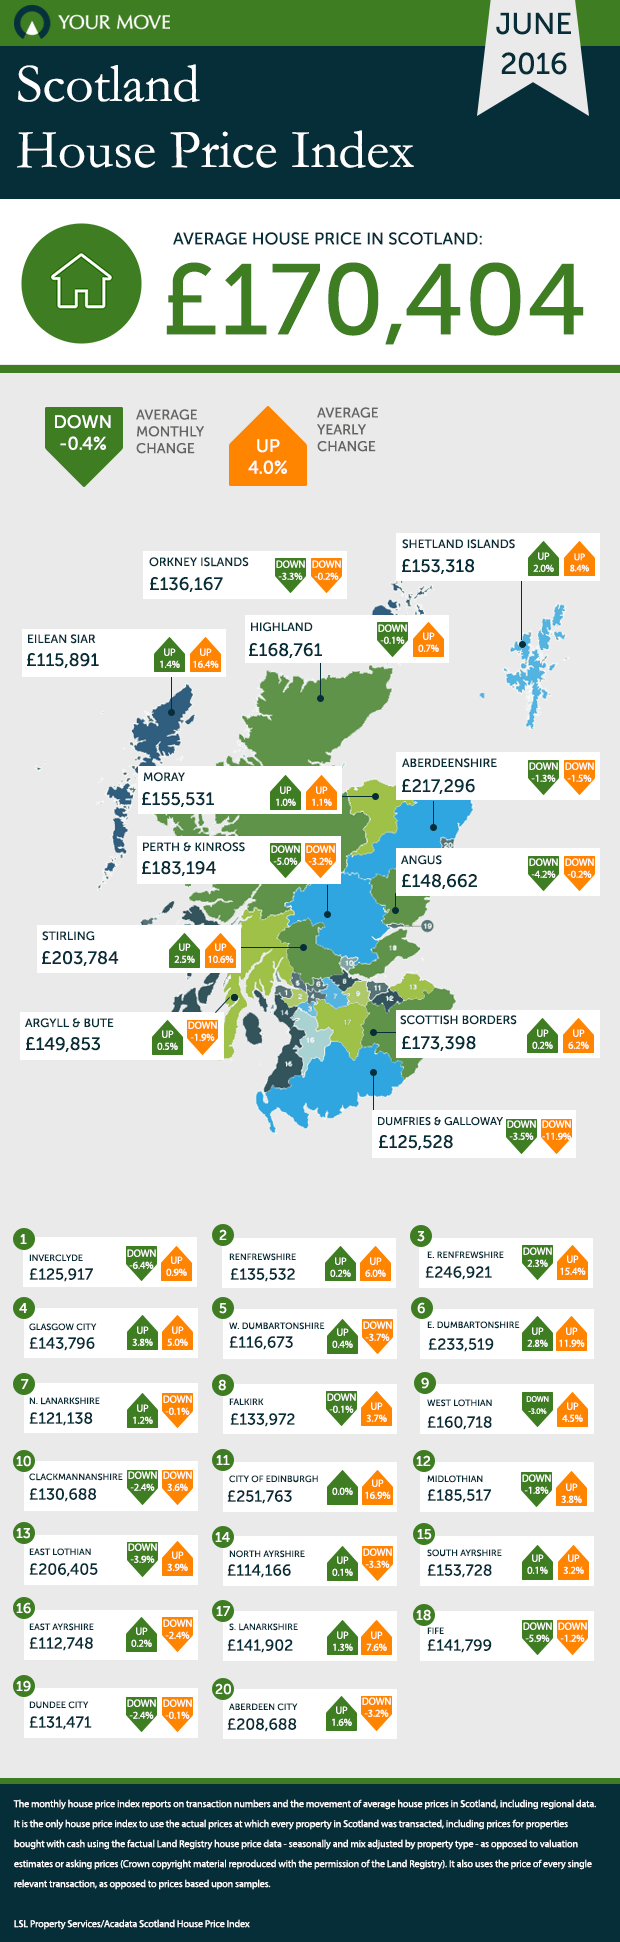 June16 Scot HPI Infographic